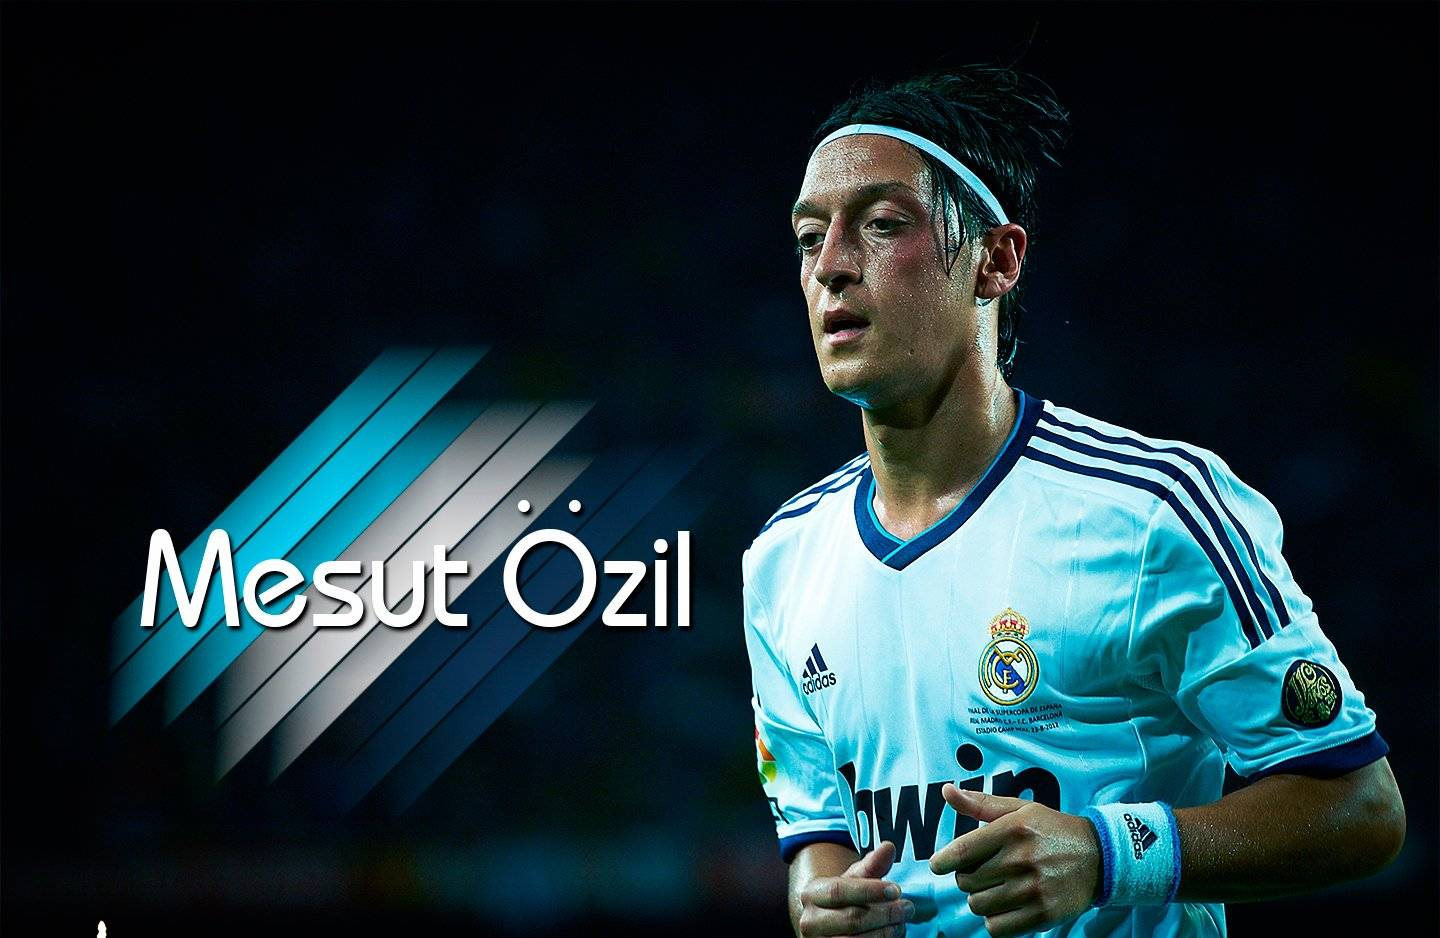 Mesut Ozil Arsenal Fc Wallpapers Border 155435 Image